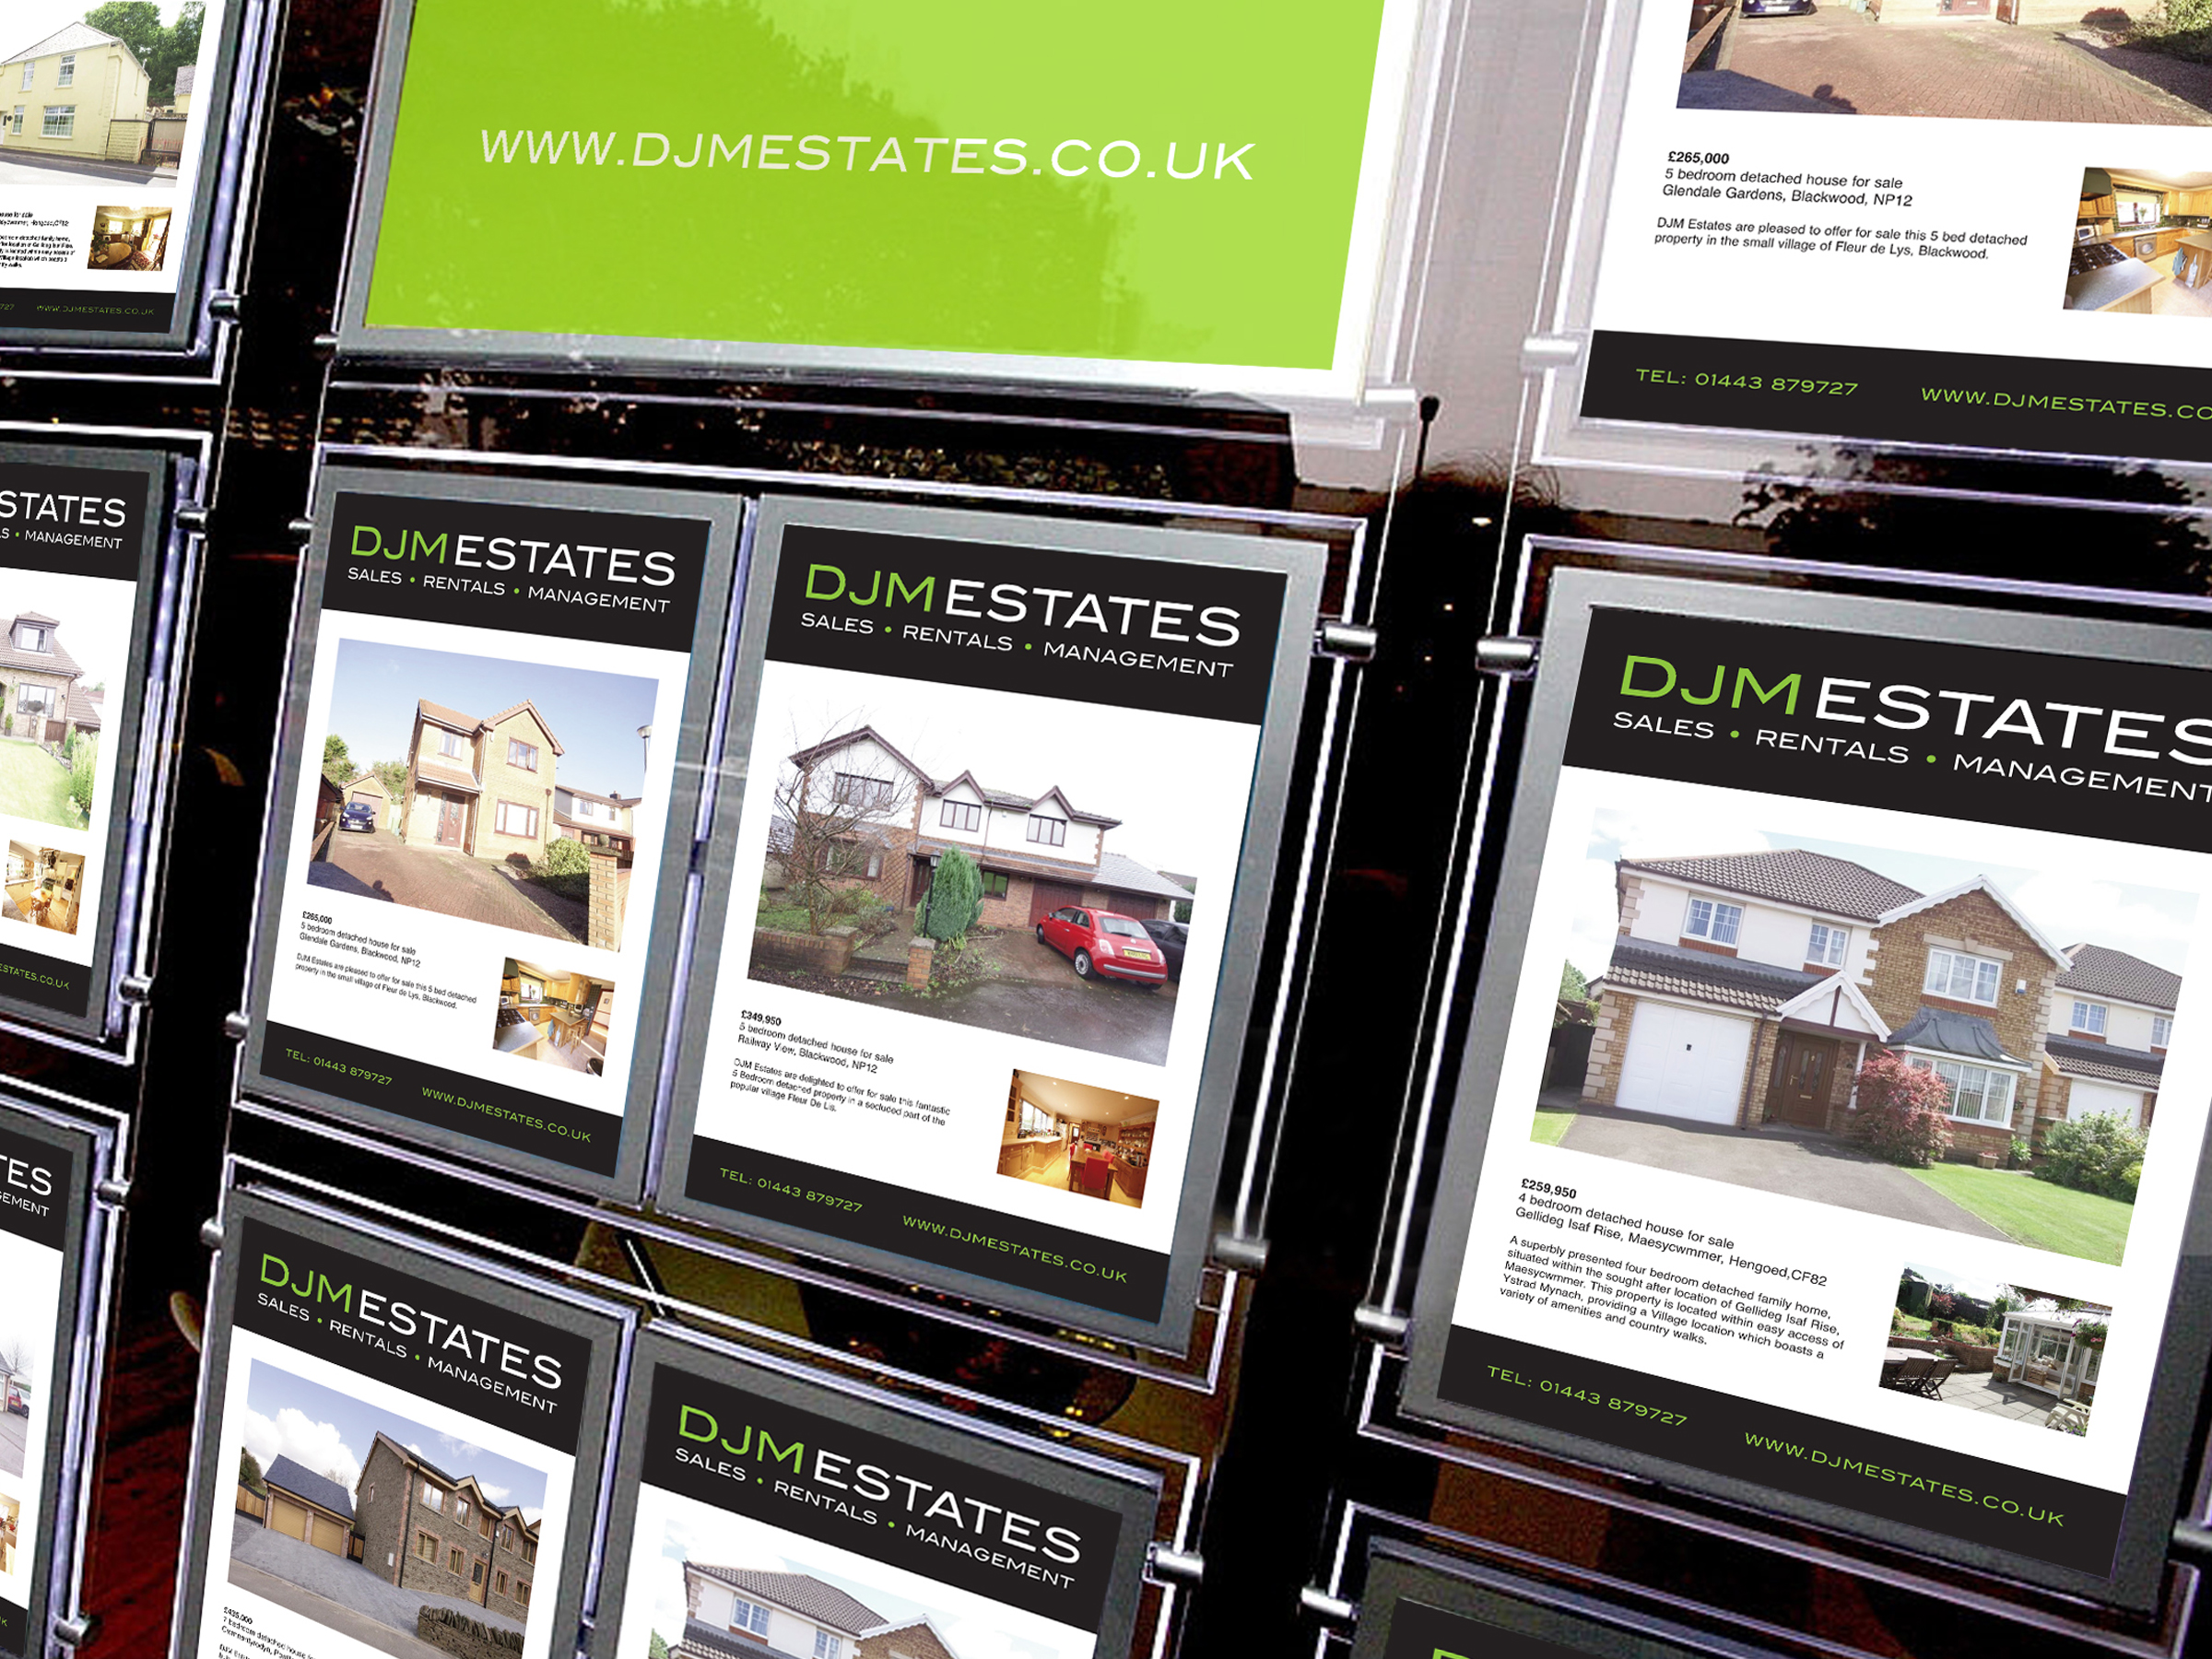 DJM Estates_display.JPG